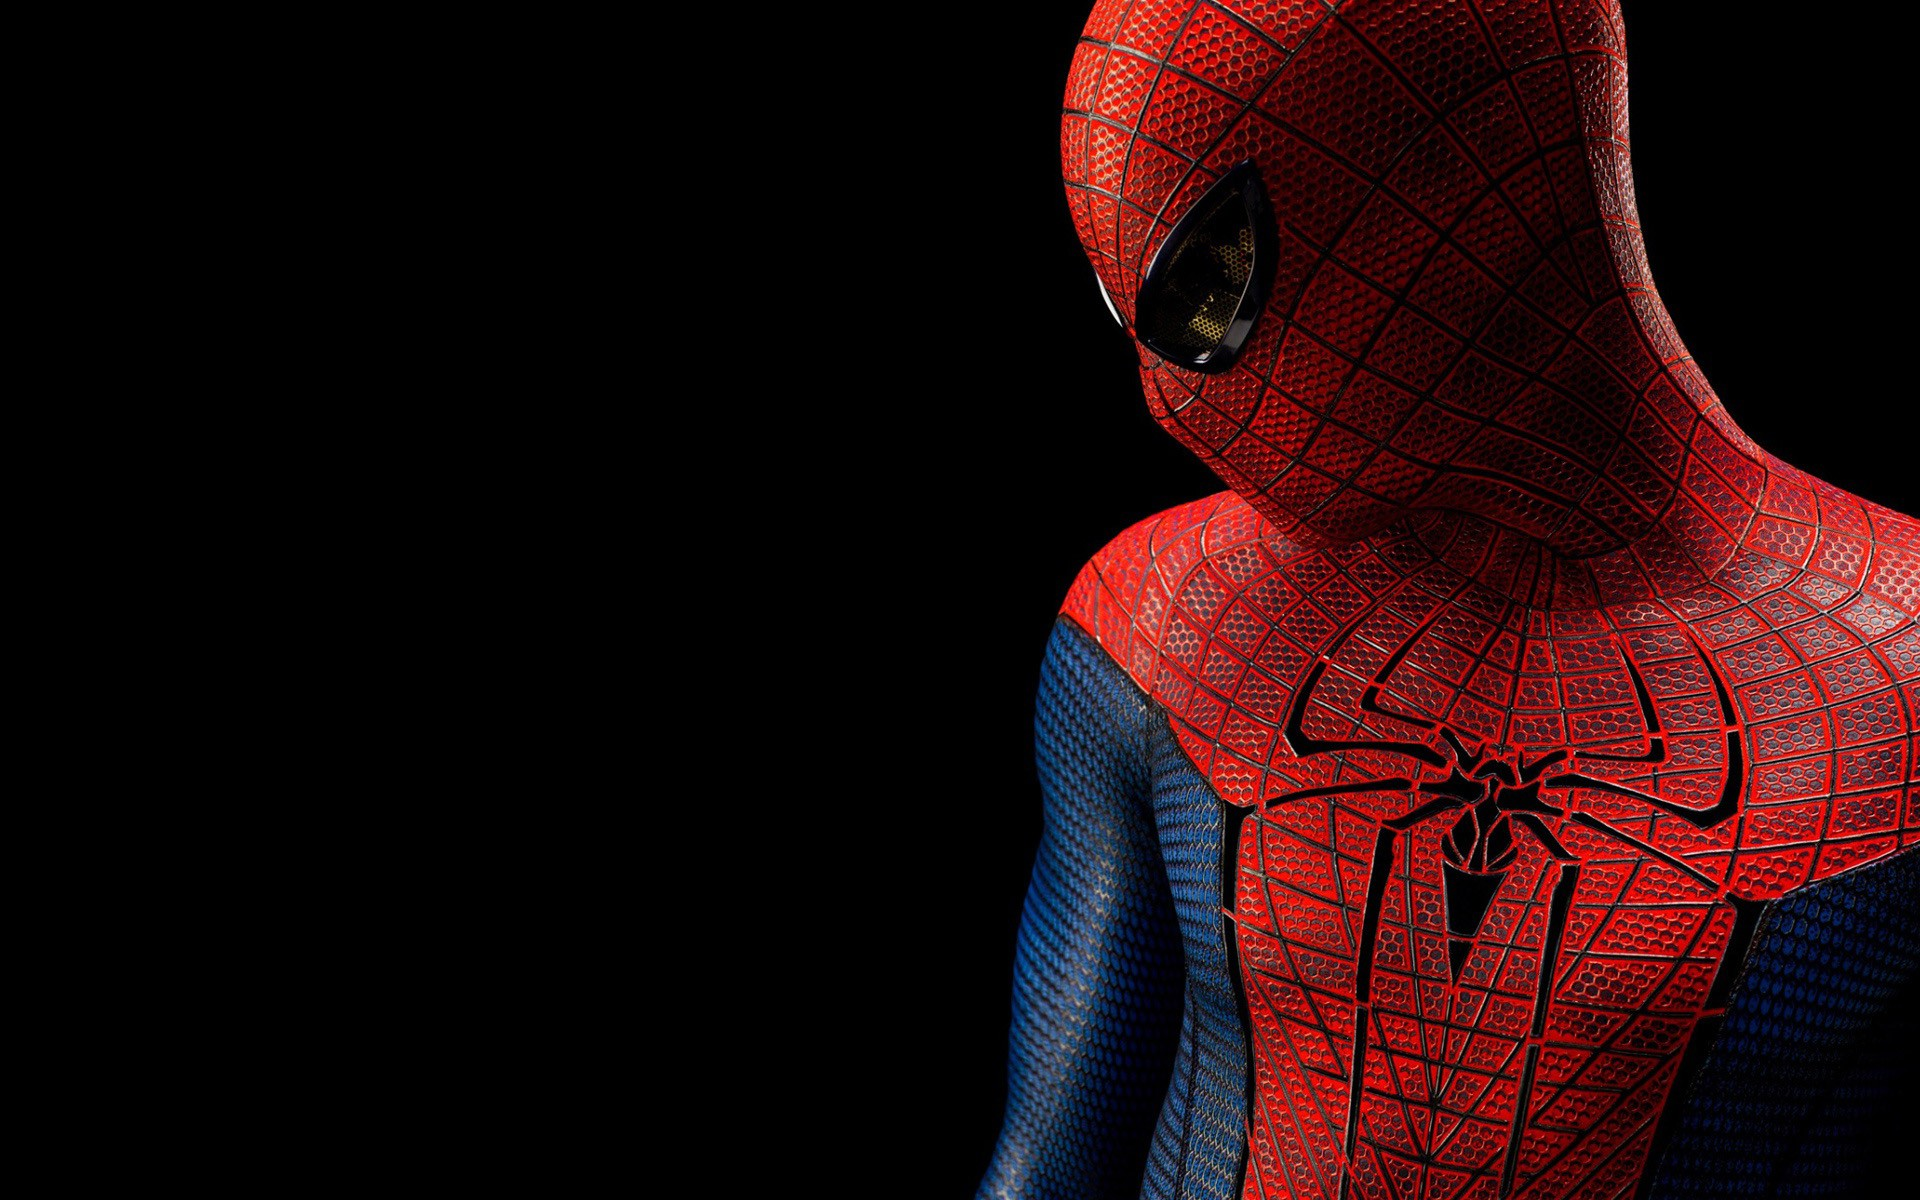 Traje de Spiderman - 1920x1200